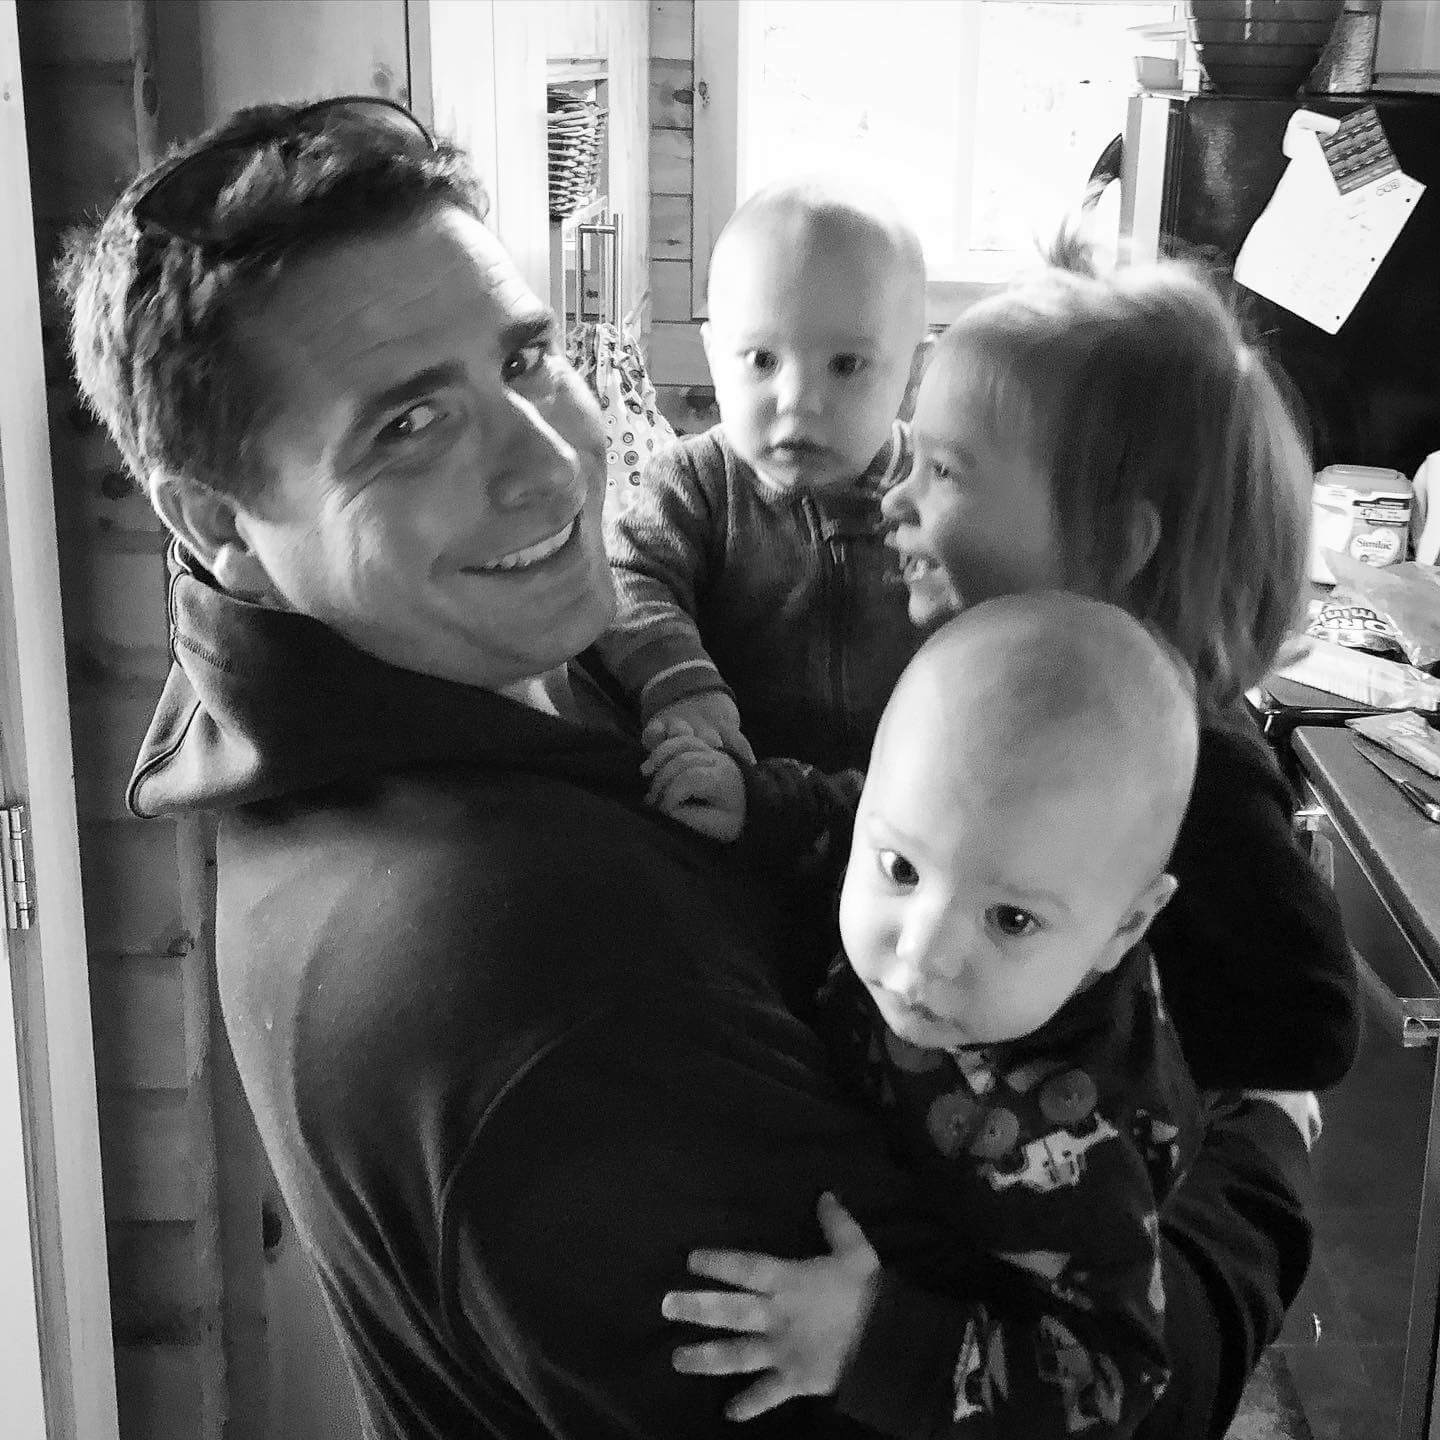 Thompson with his three young children all being held in his arms